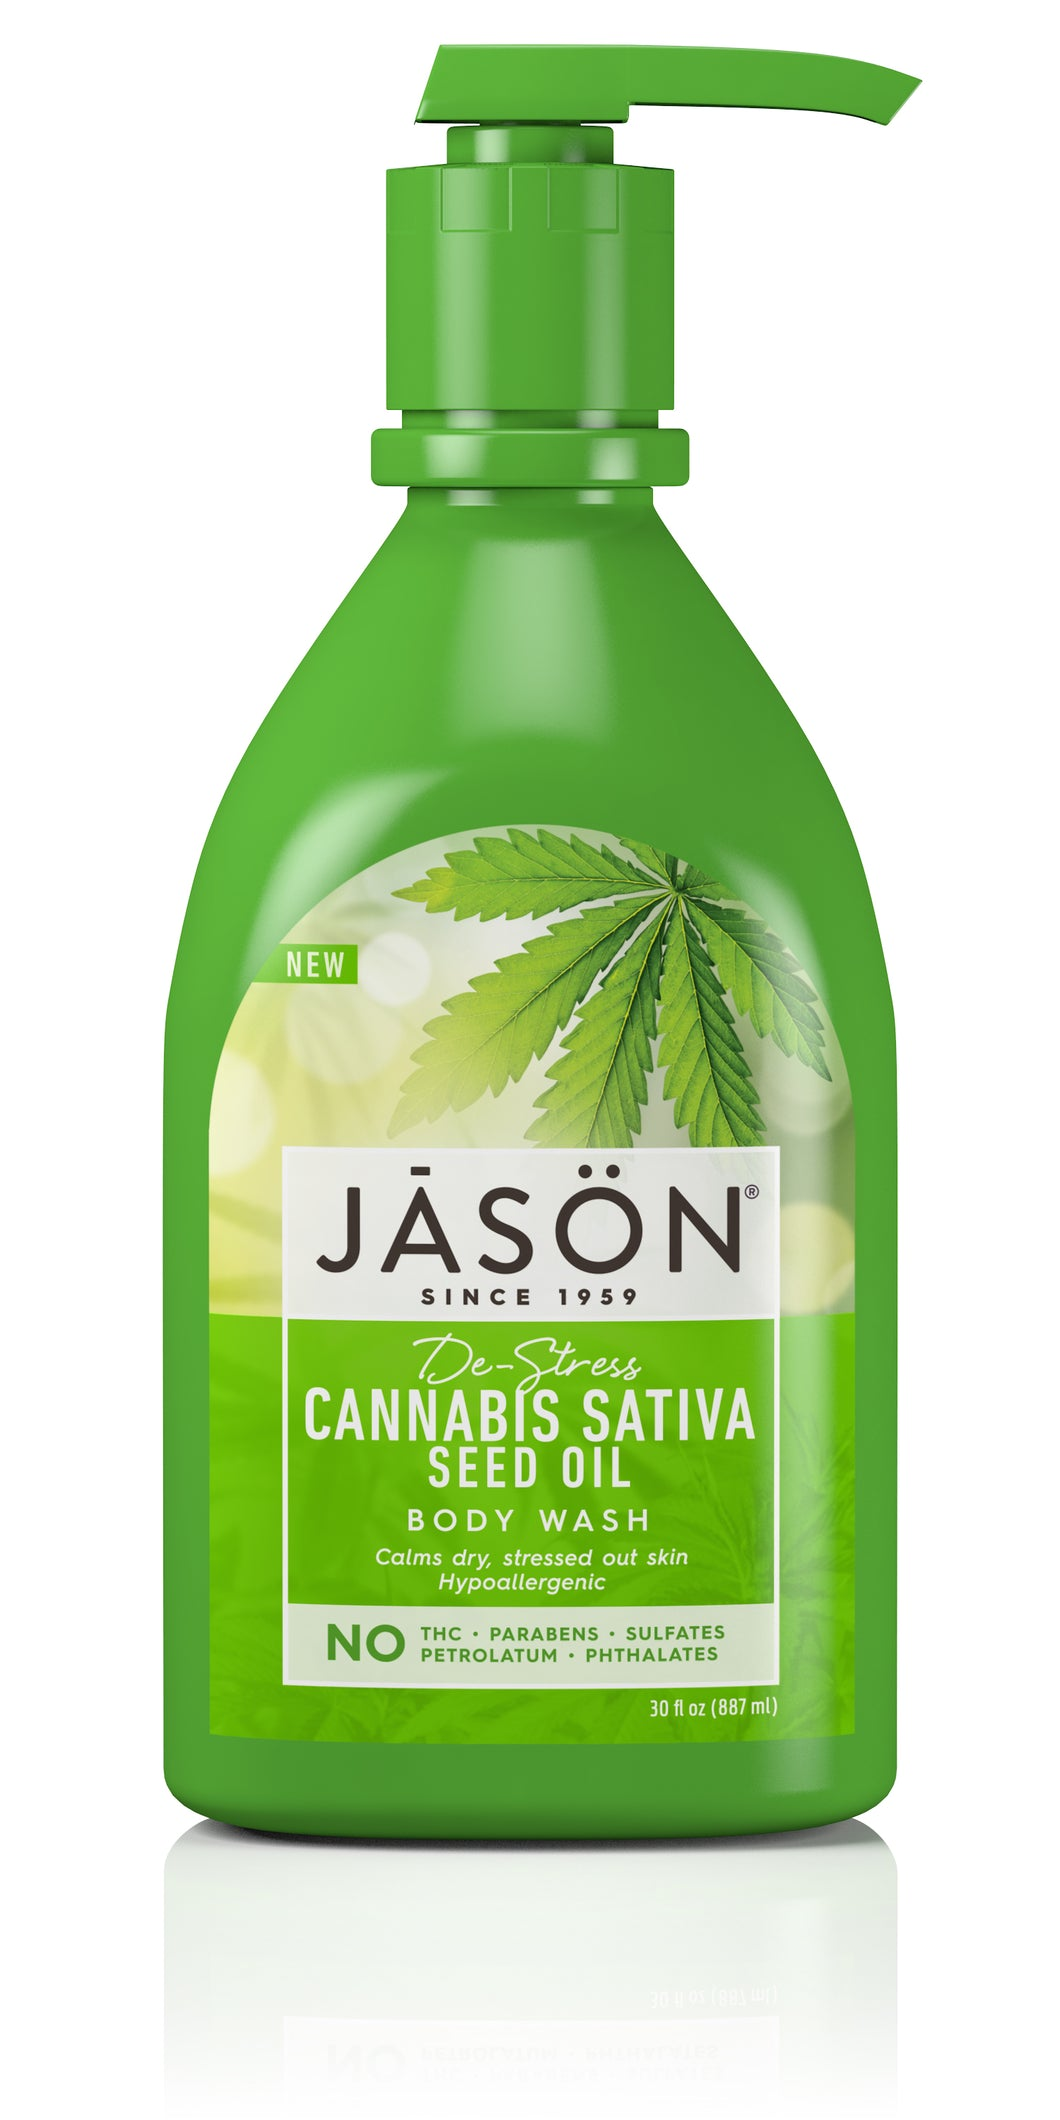 Cannabis Sativa Seed Oil Body Wash